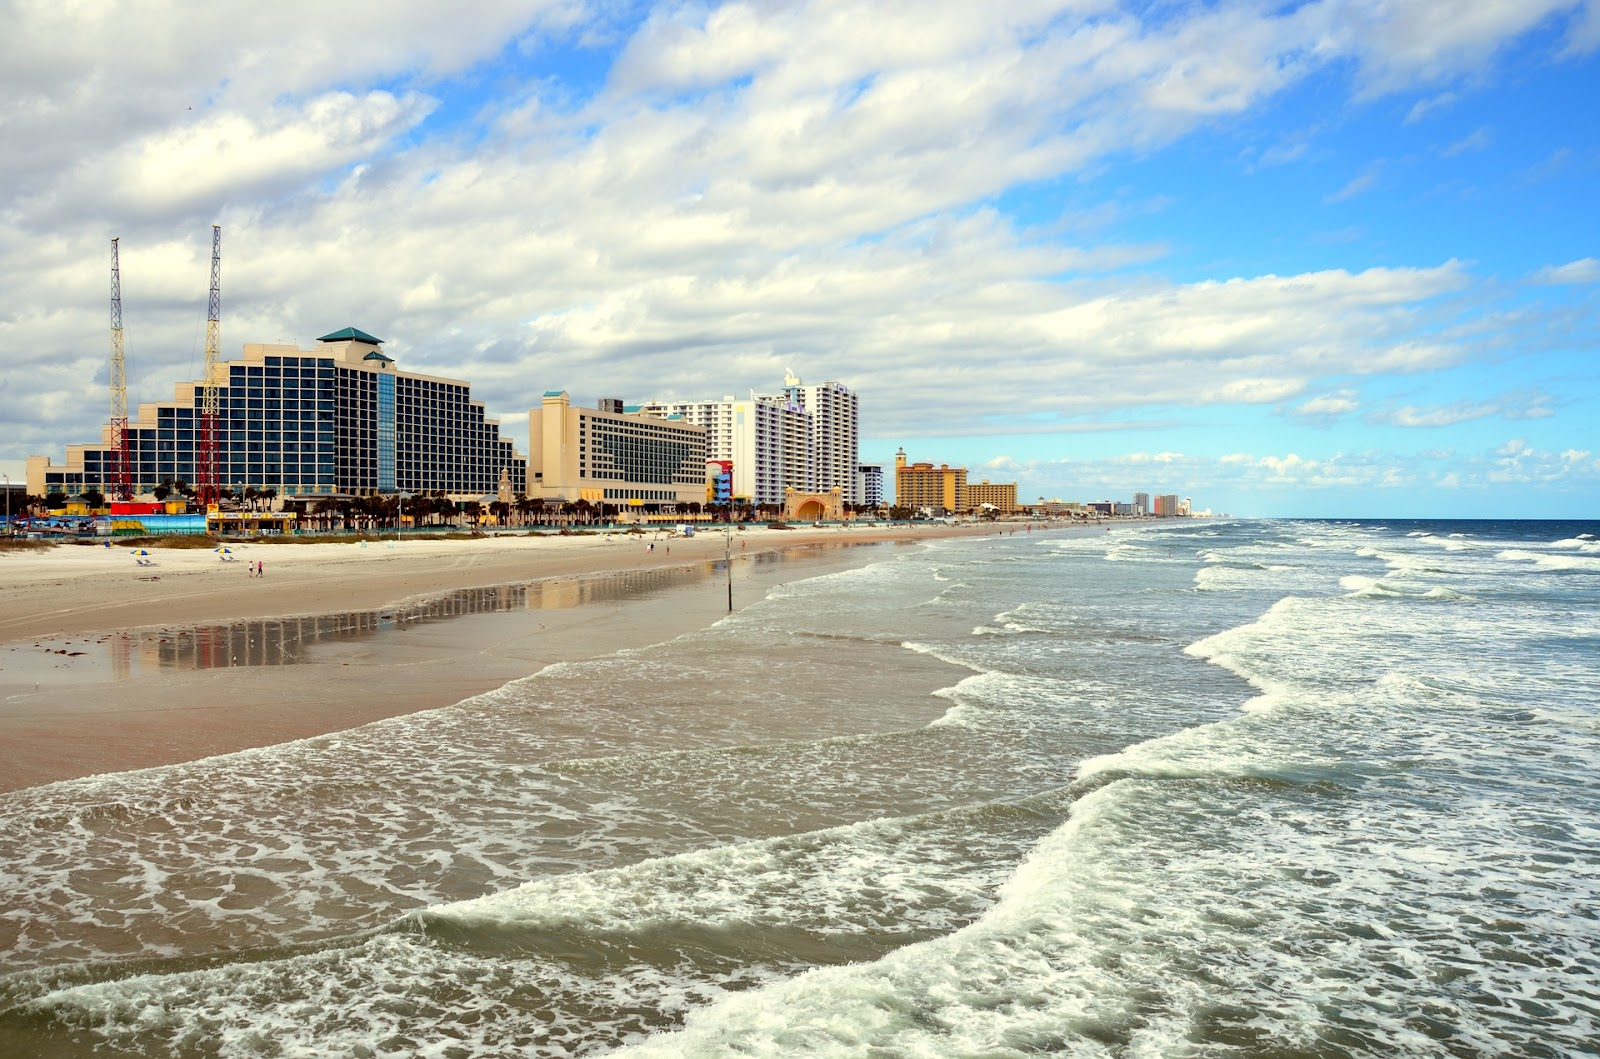 wide sandy beach small waves clean blue water and hotels in background in daytona beach florida